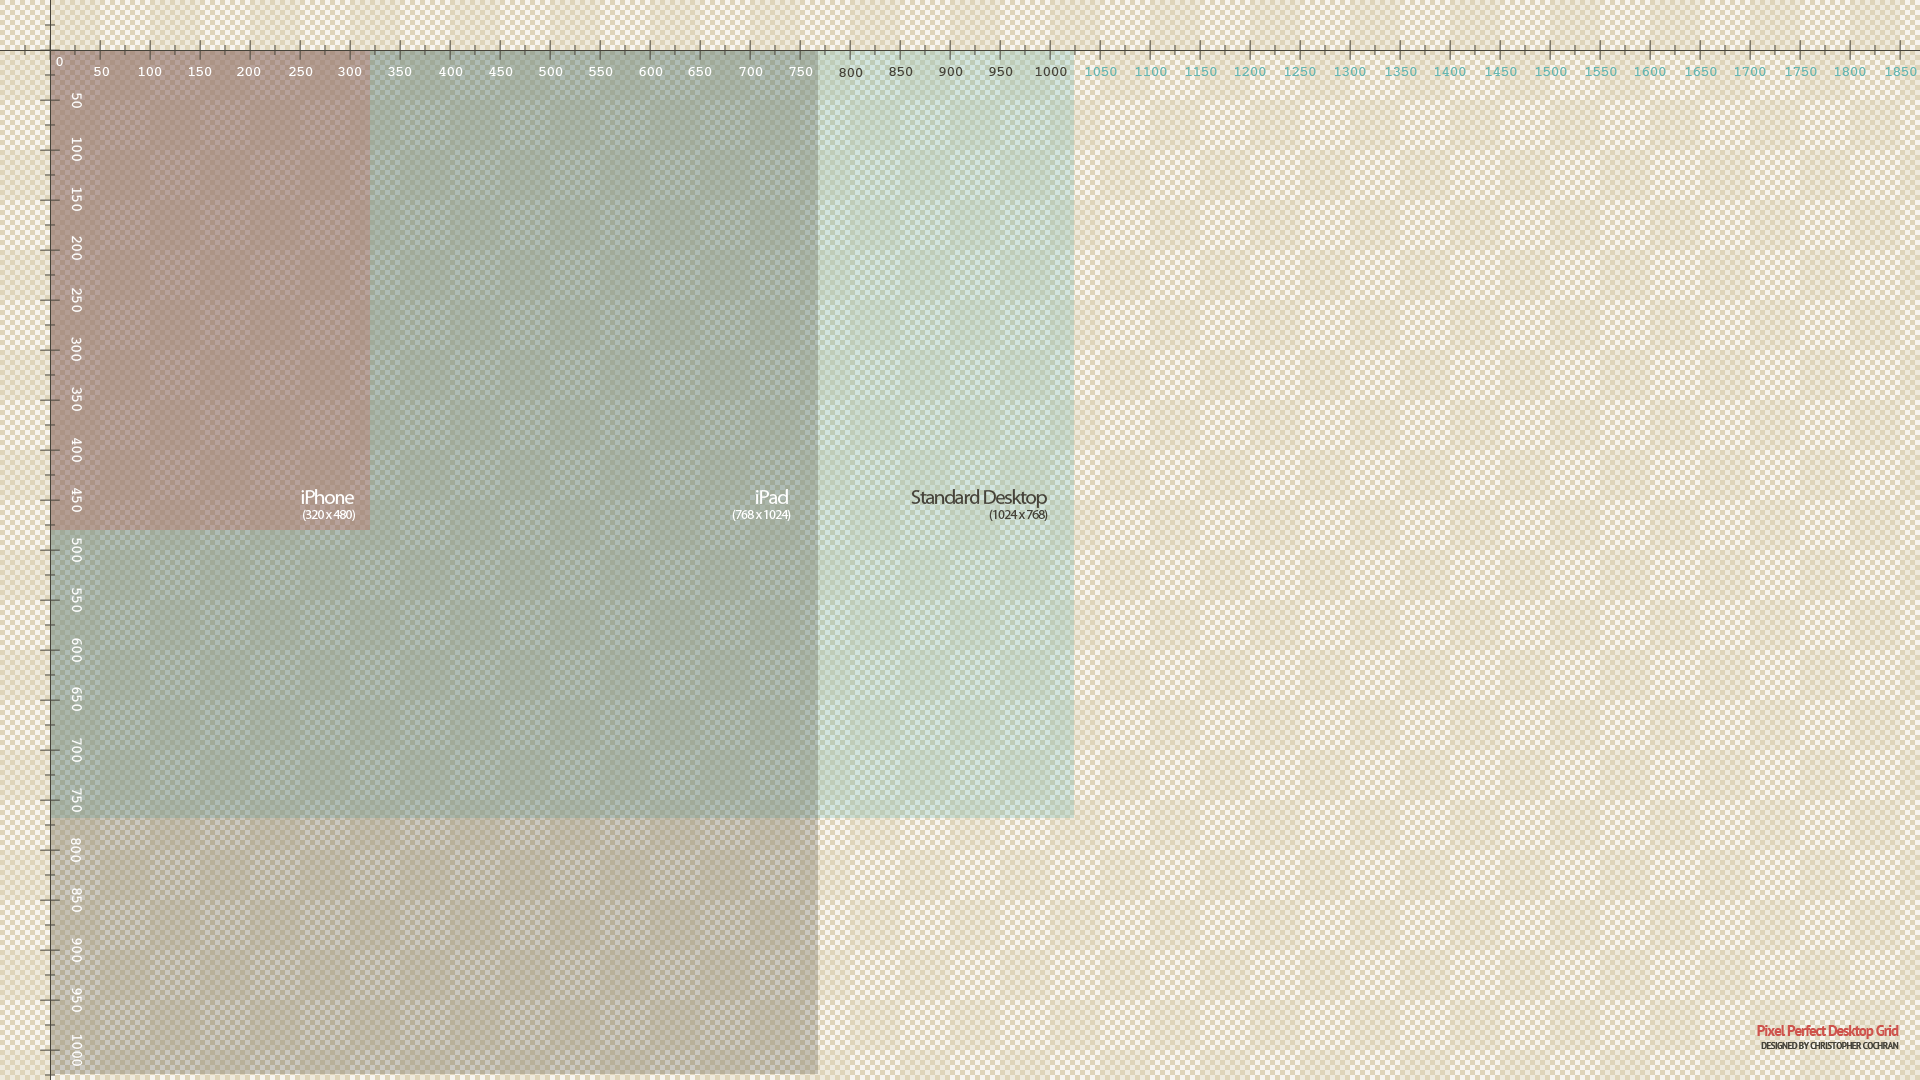 1920x1080-pixel-perfect-desktop-grid